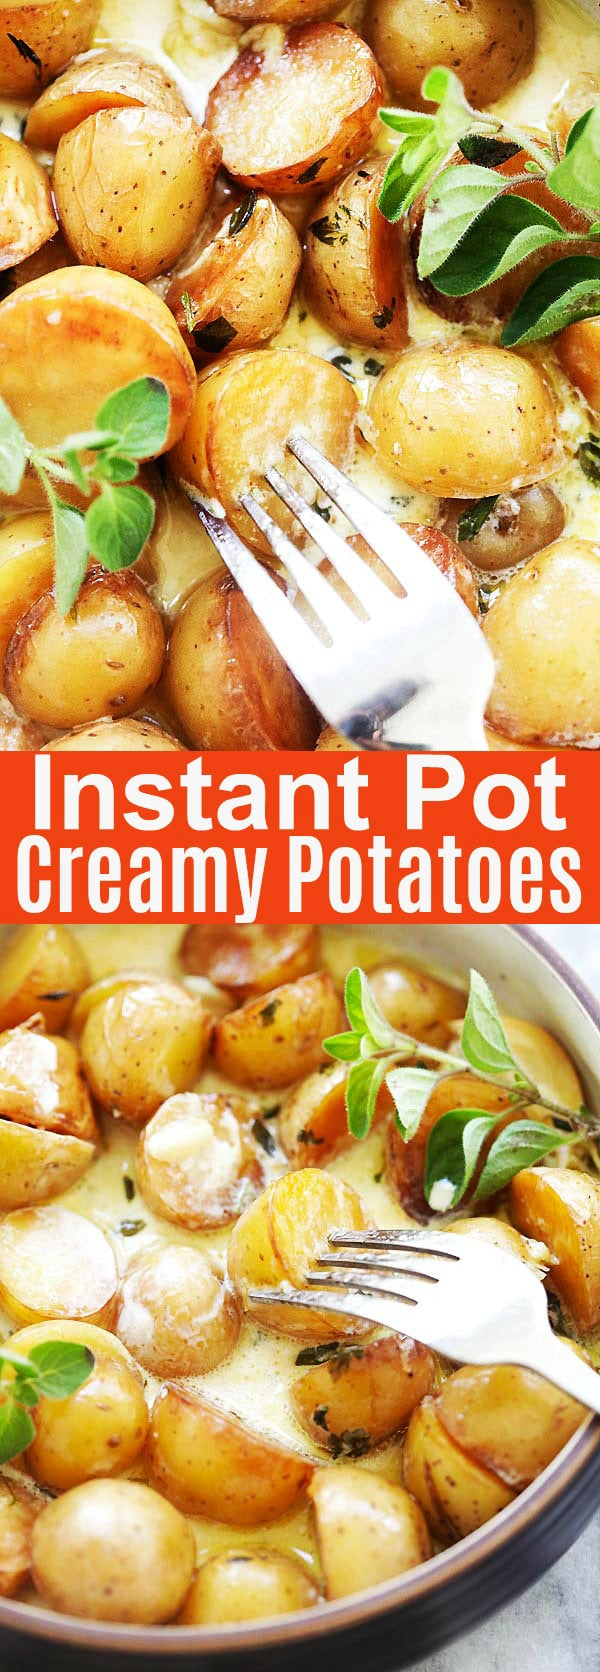 Instant Pot Creamy Potatoes - ready in 15 minutes or less, these crispy and creamy potatoes were perfectly roasted in the Instant Pot pressure cooker. So delicious with garlic and aromatic herbs | rasamalaysia.com